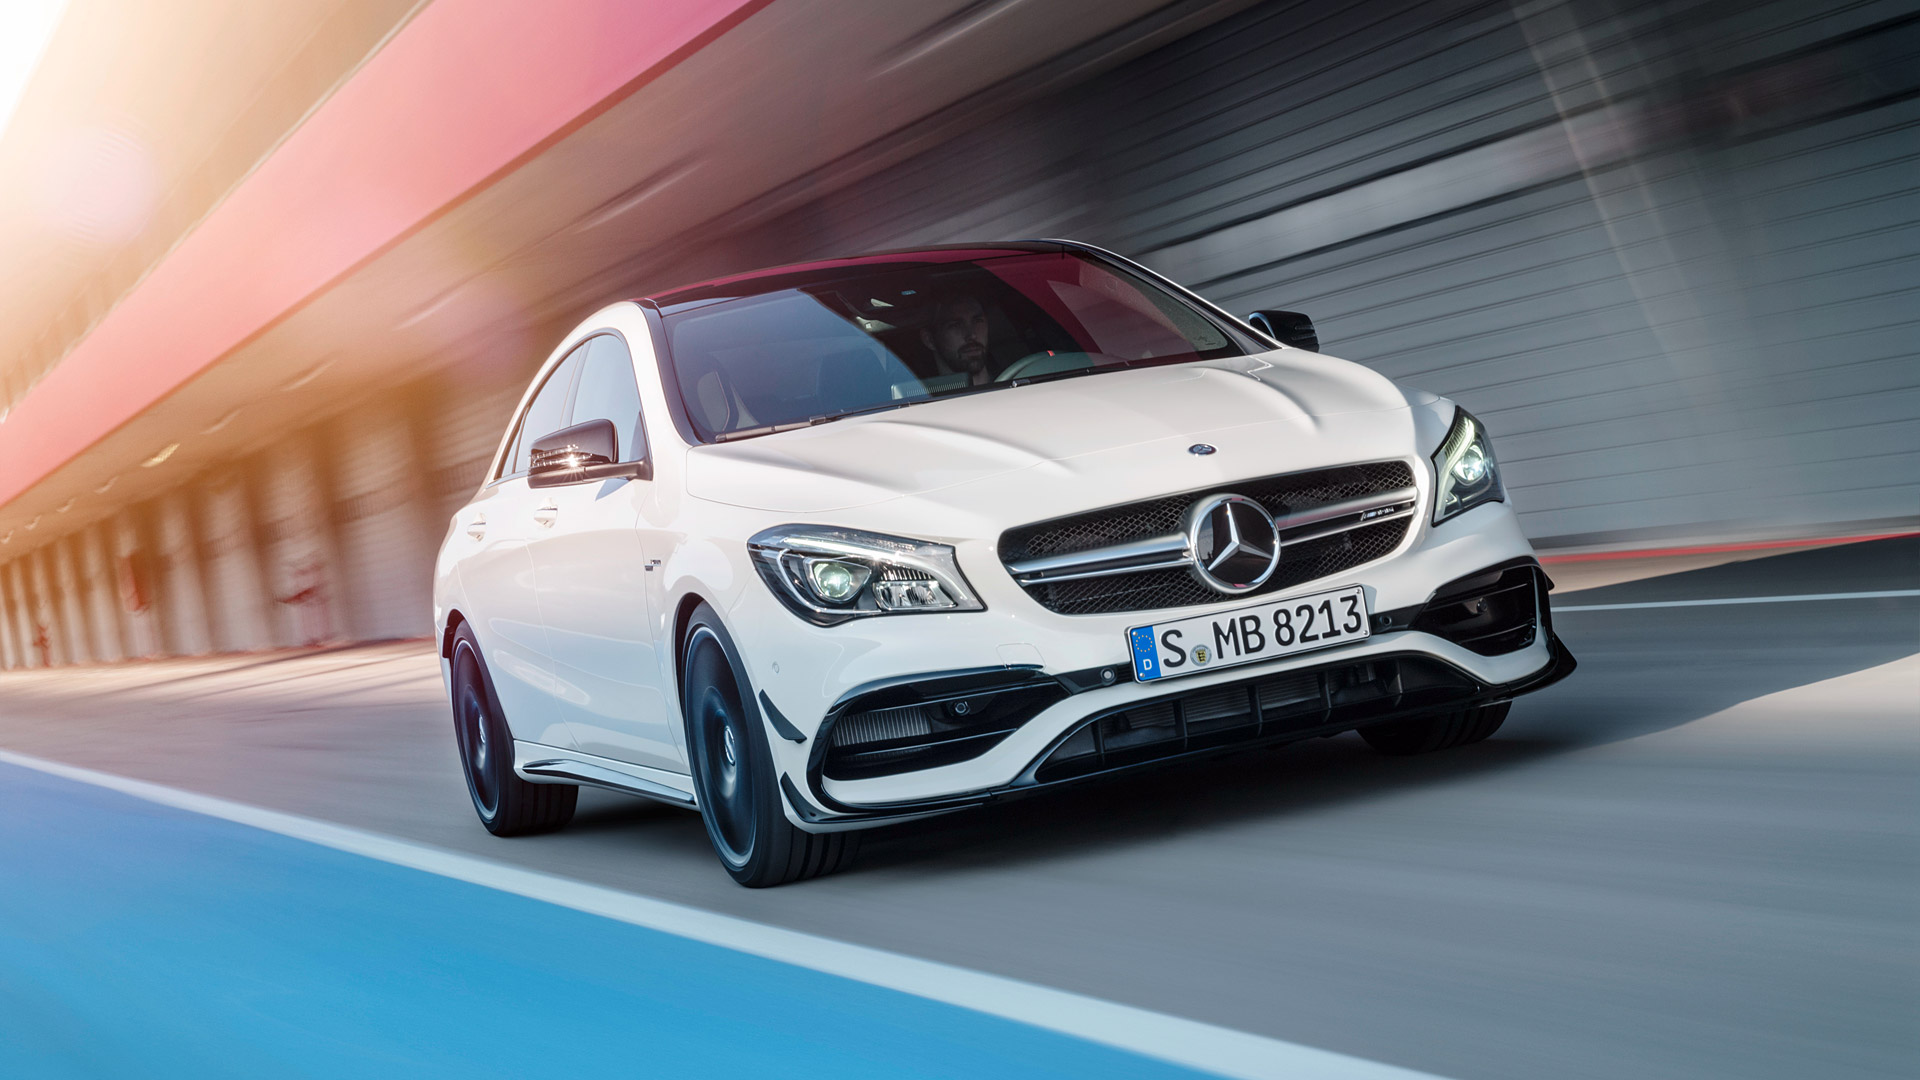 2017 Mercedes Benz CLA45 AMG Wallpapers HD Images   WSupercars 1920x1080